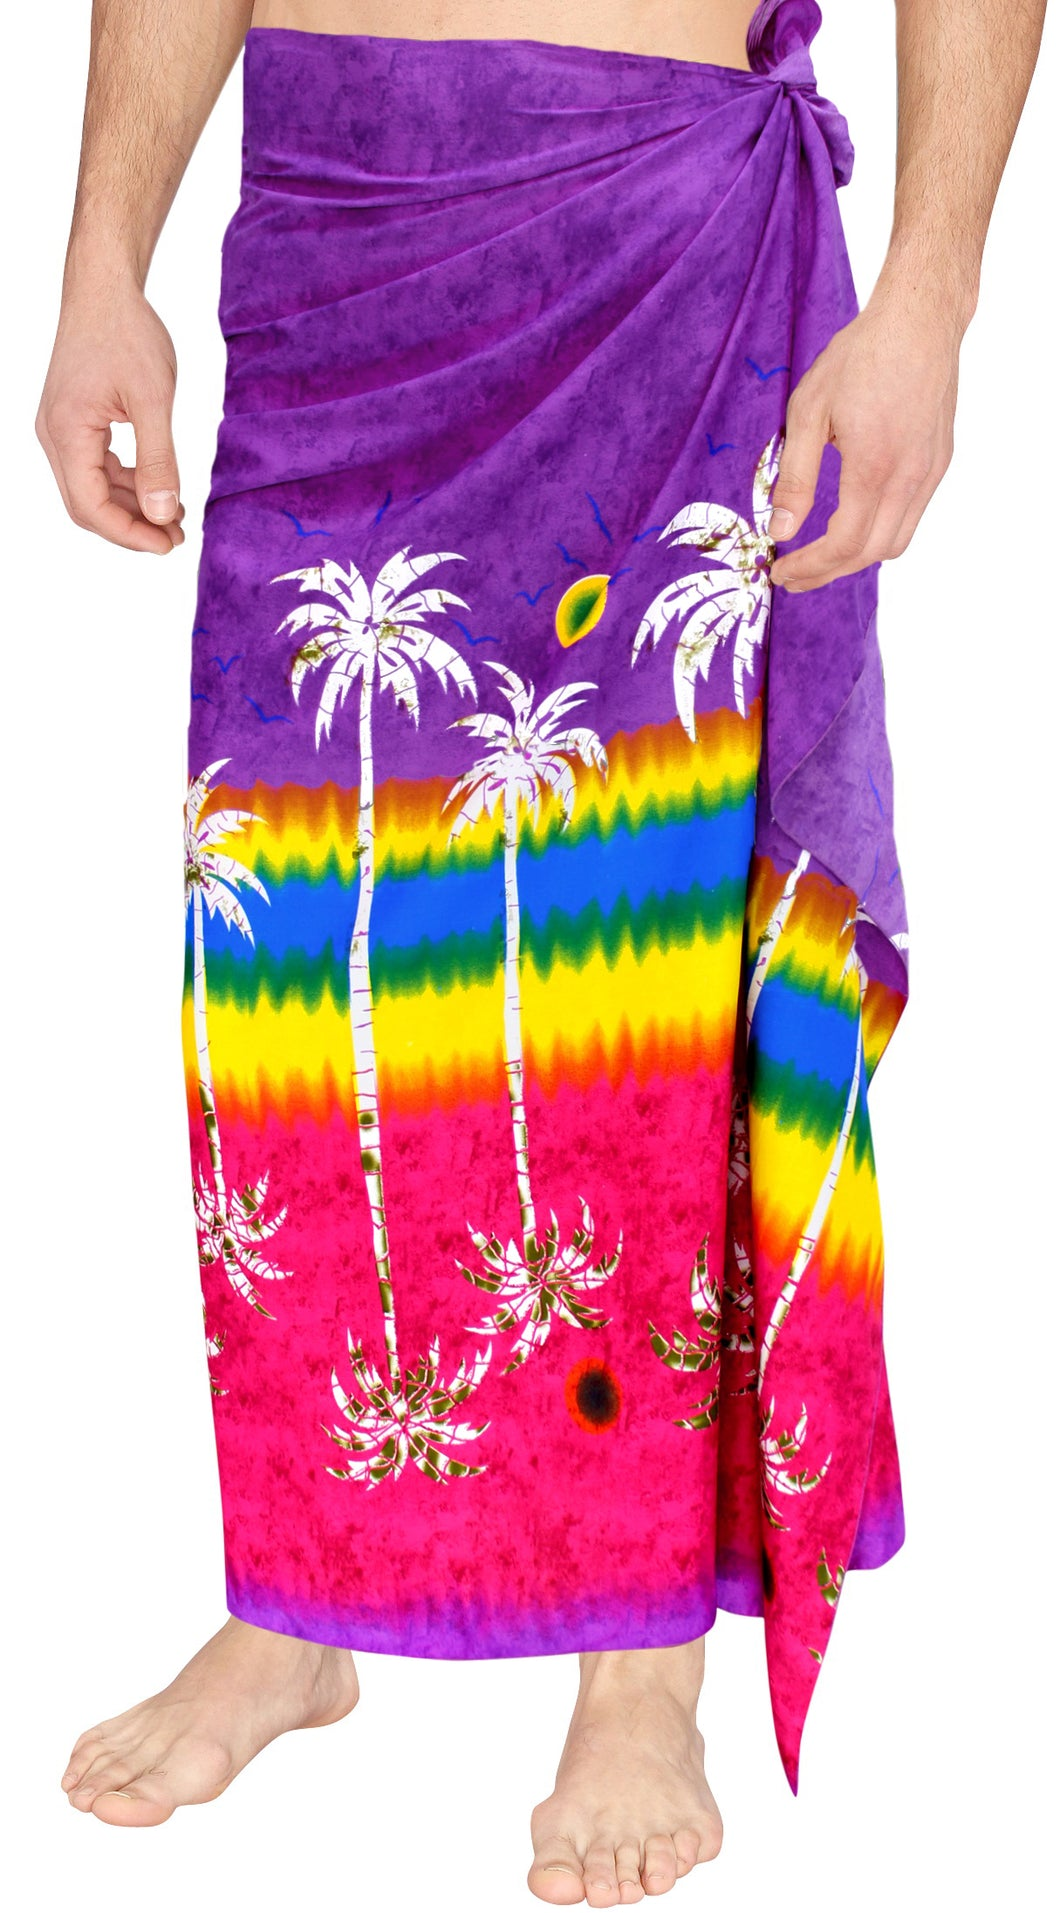 mens-sarong-pareo-wrap-cover-ups-beachwear-swimsuit-bathing-suit-hawaiian-violet